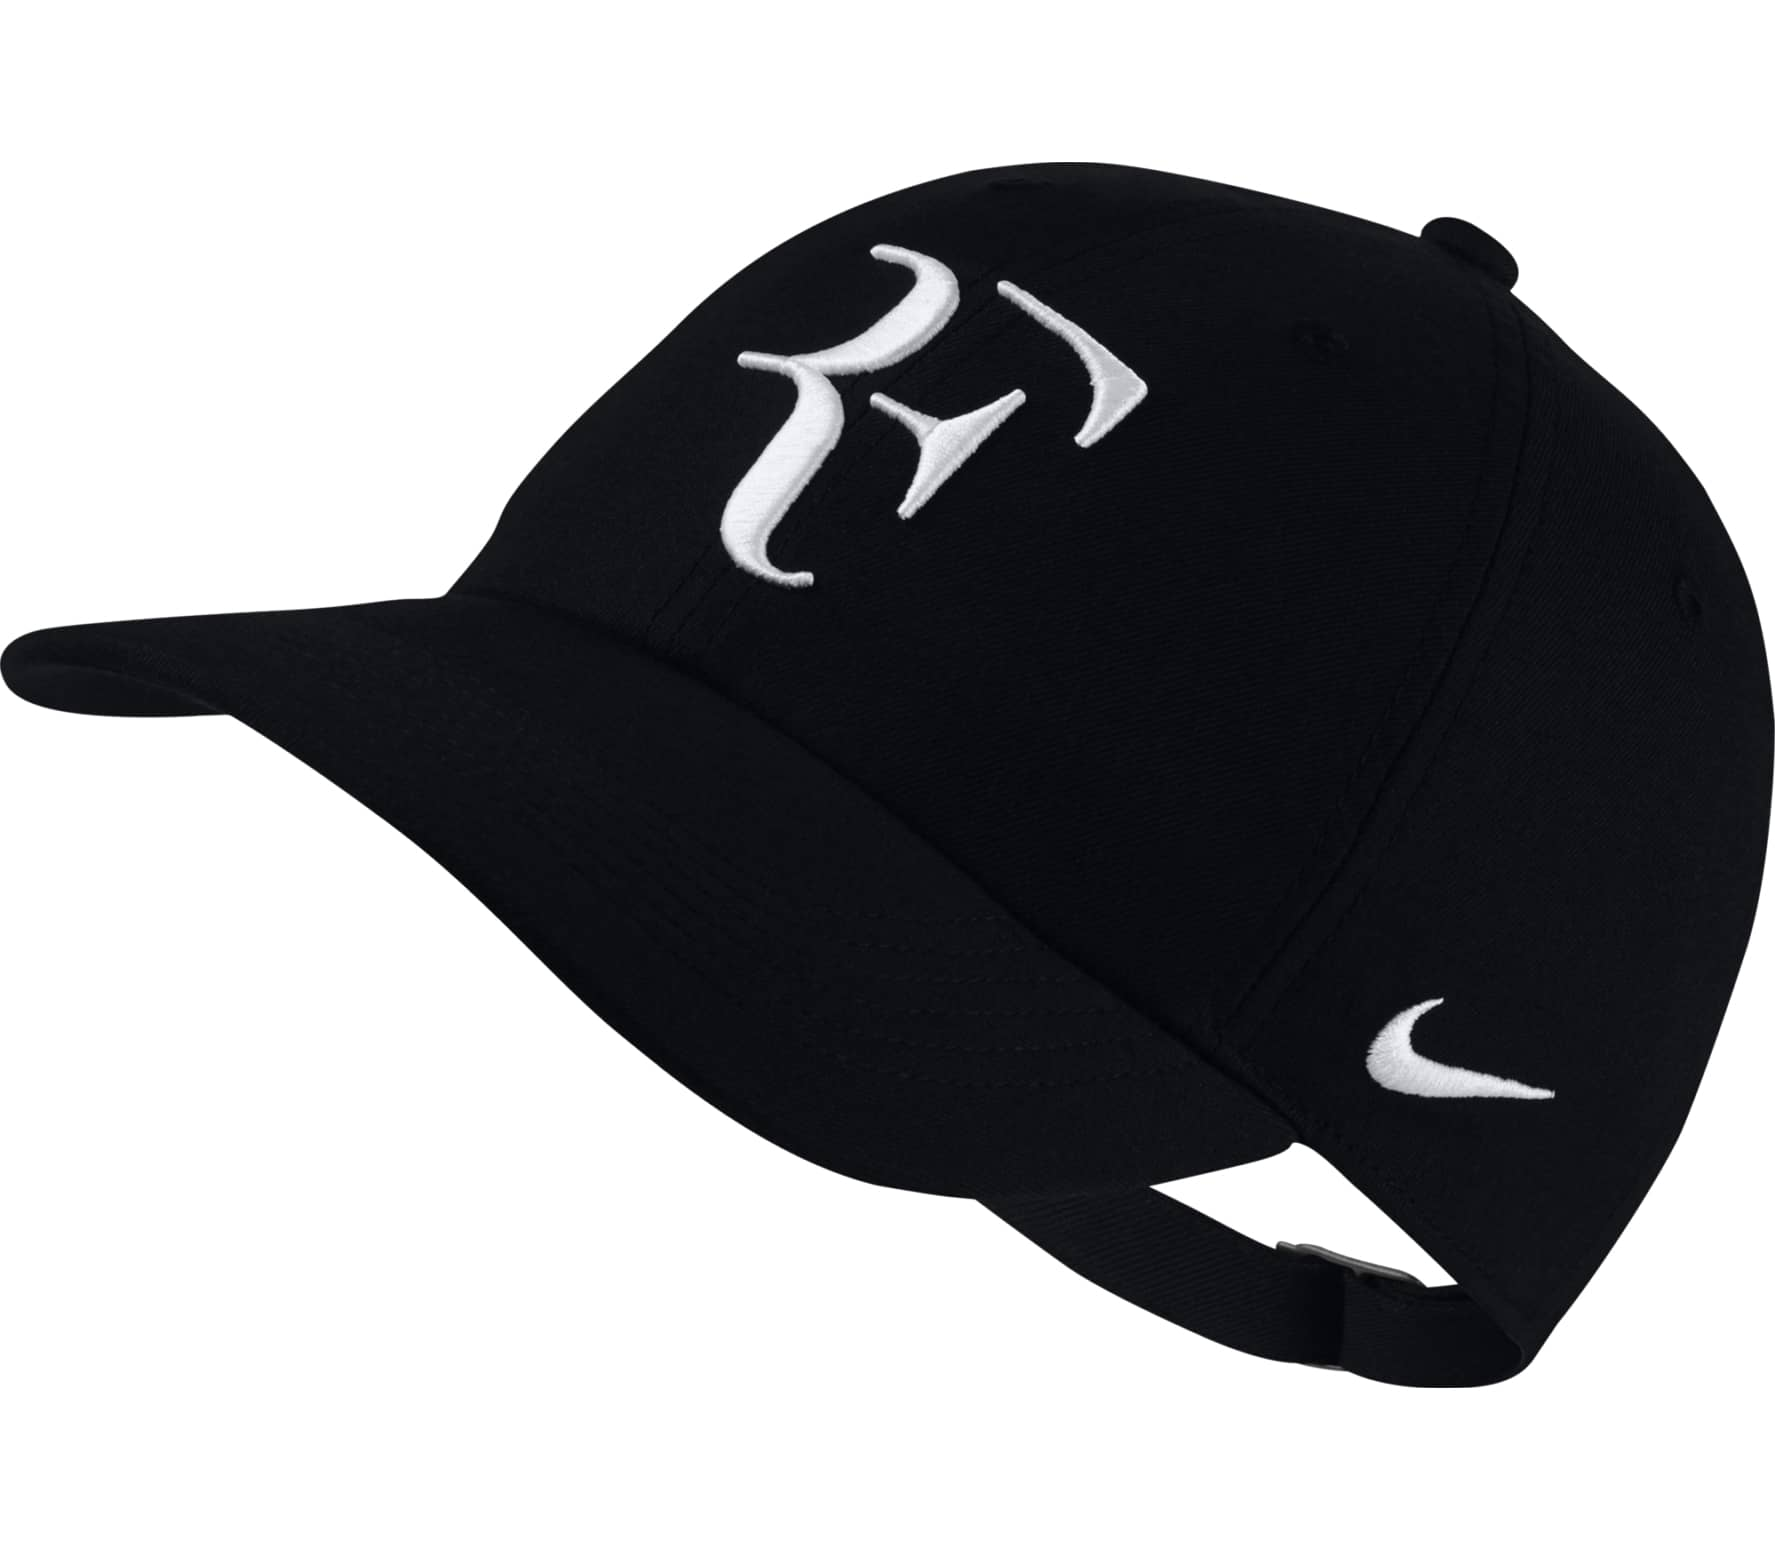 dd96589a94d Nike - Court AeroBill Heritage86 RF tennis cap (black white) - buy ...